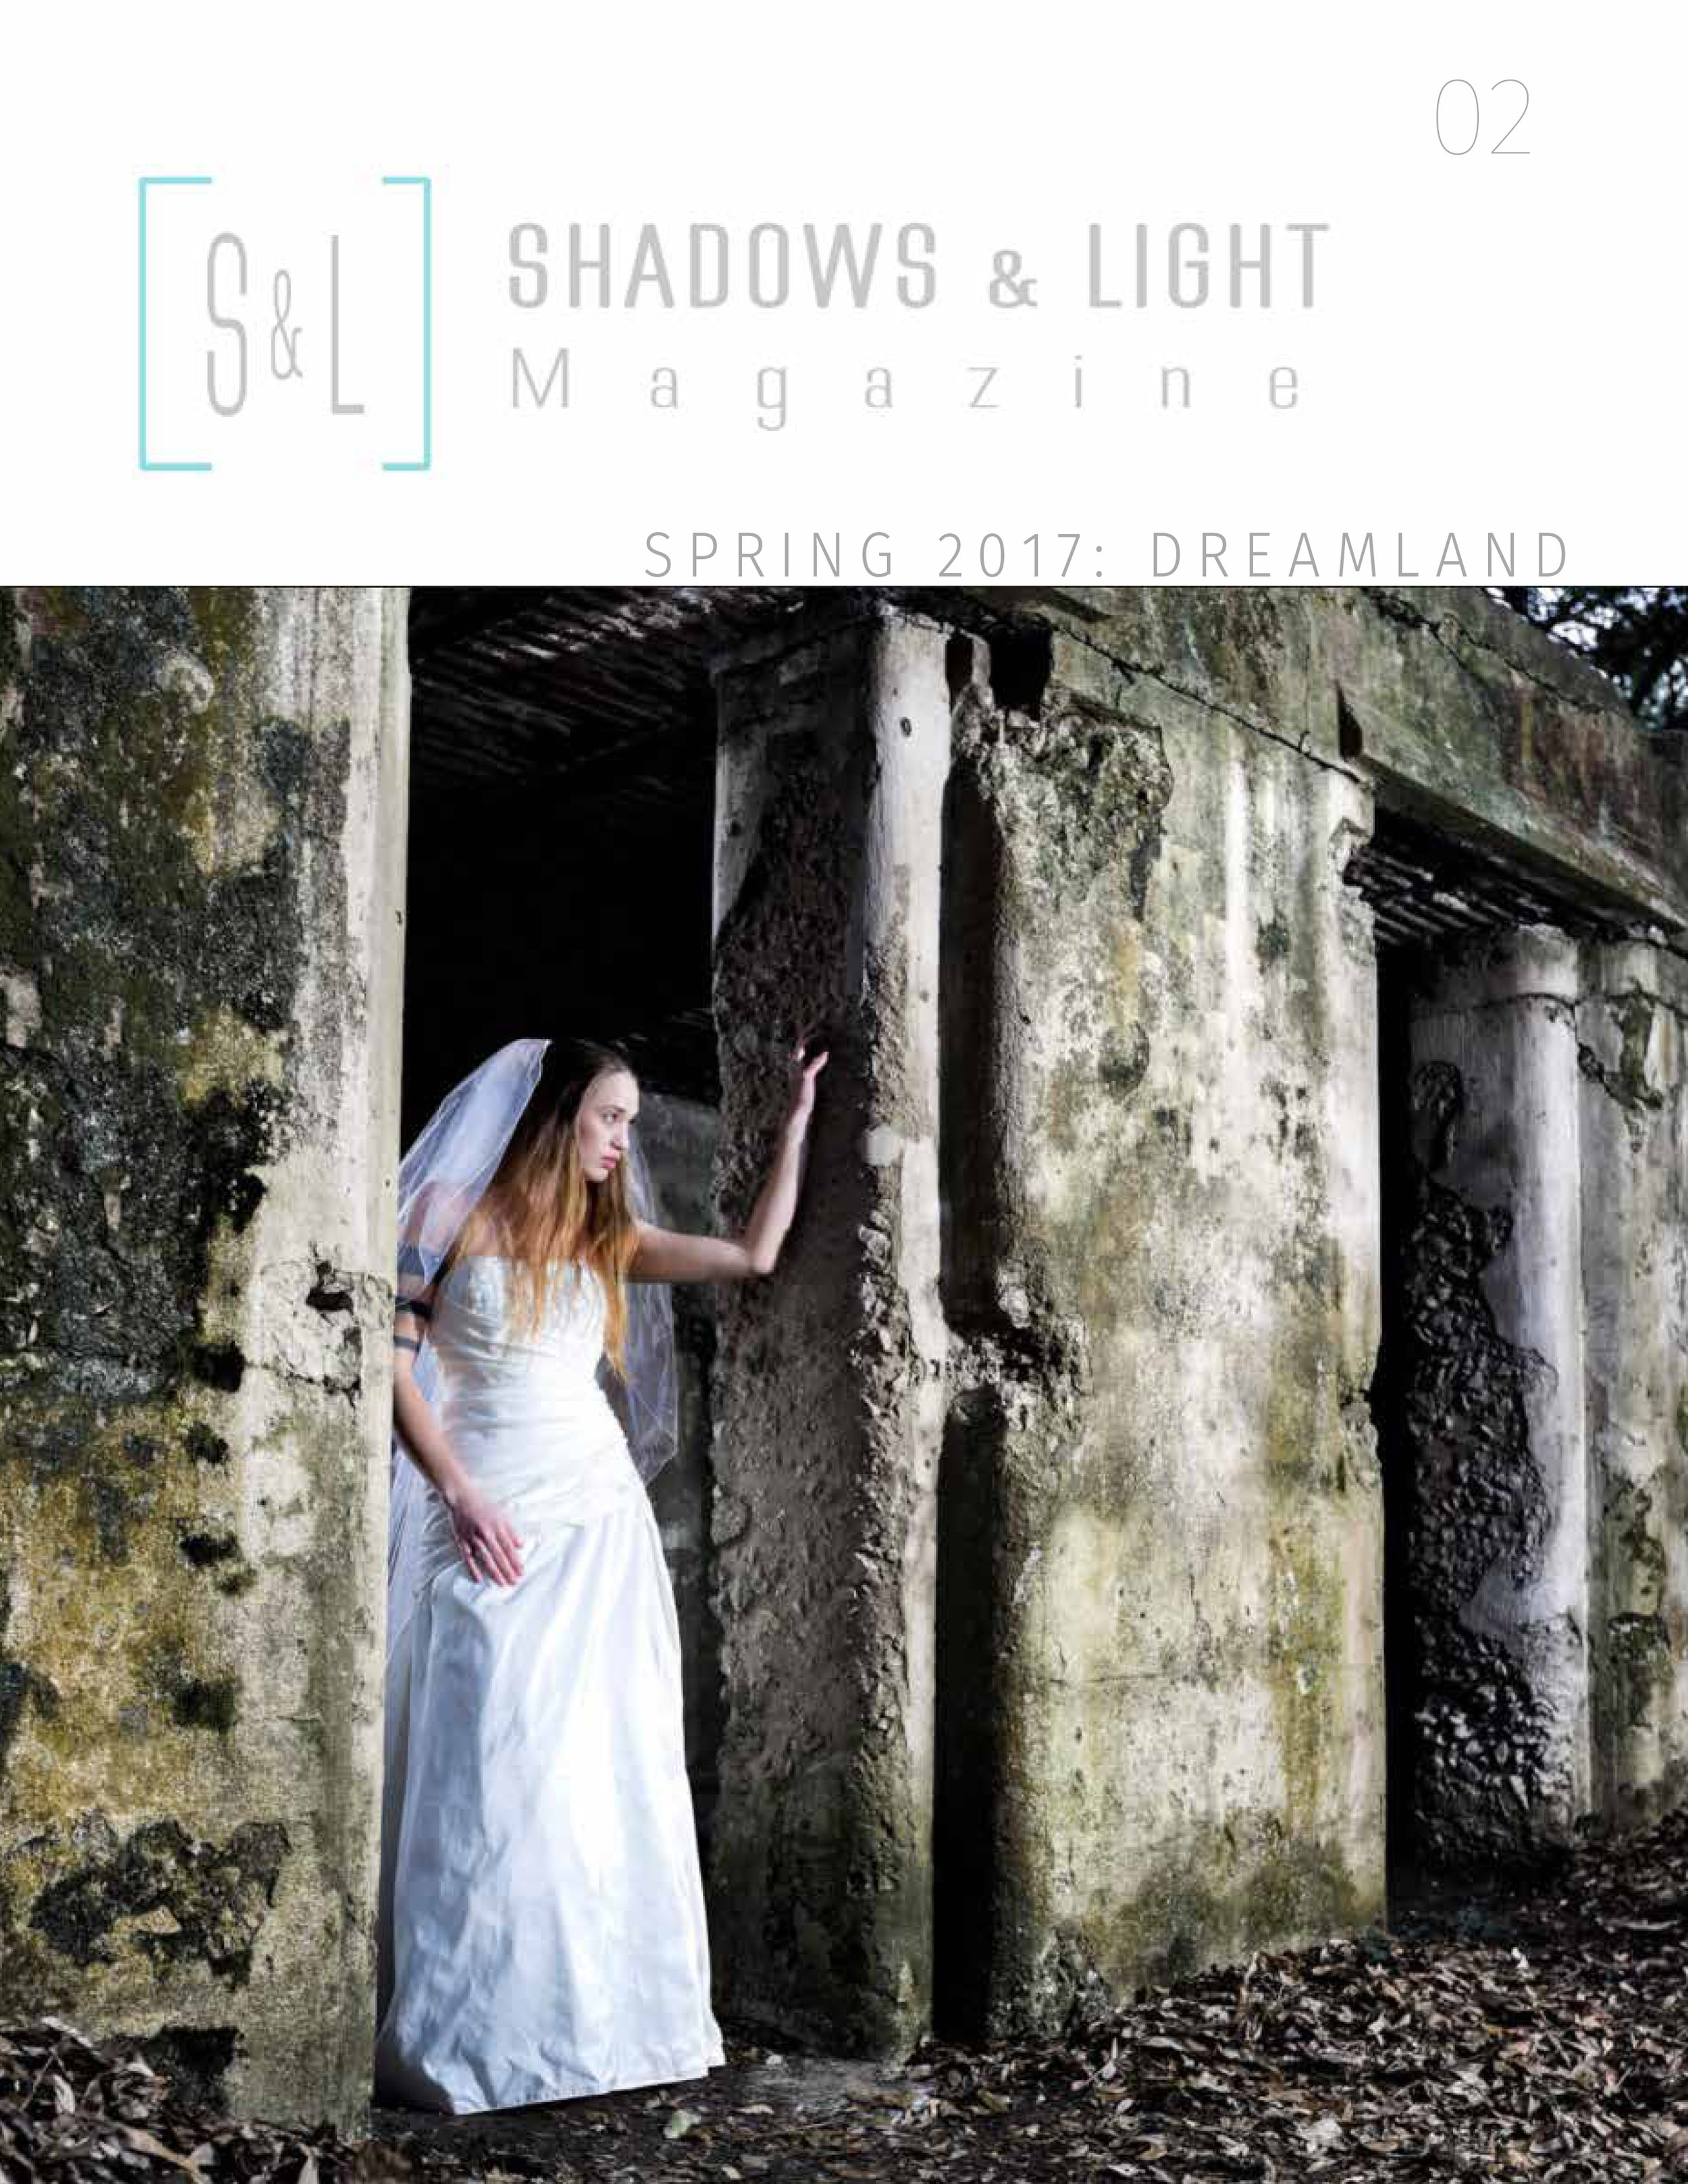 Shadows and Light Magazine - Issue 02